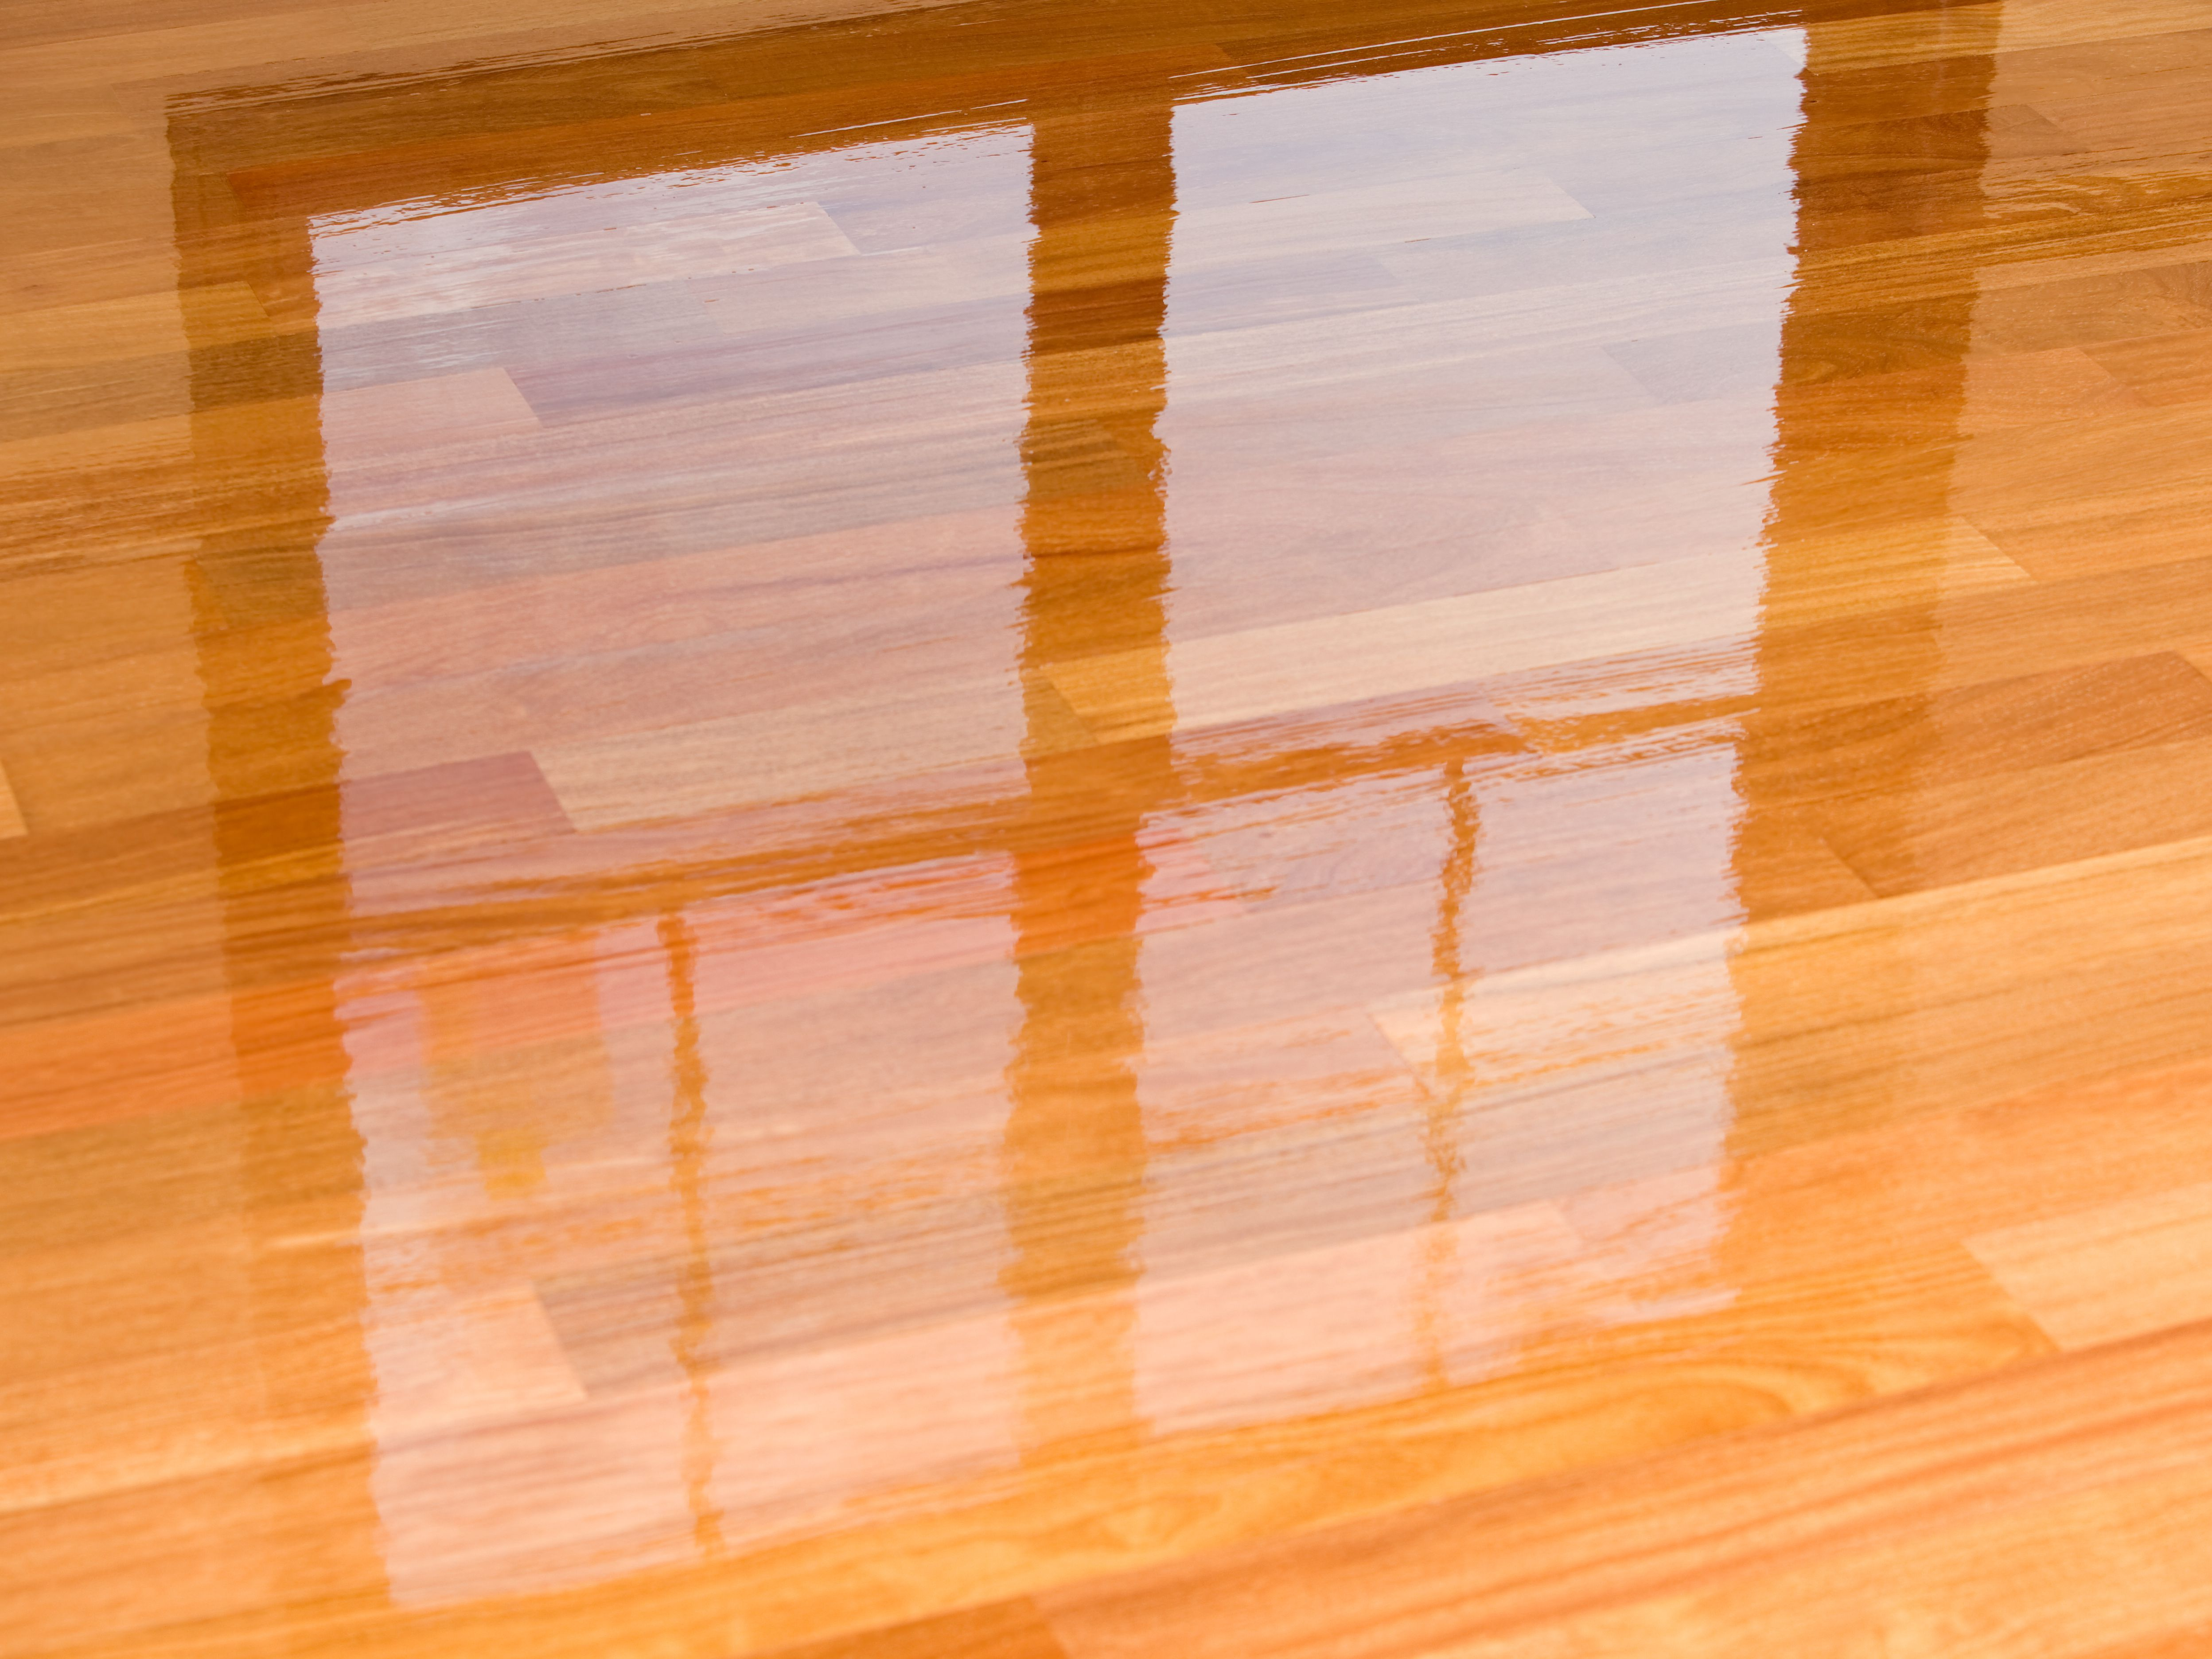 how to fix a hardwood floor that is cupping